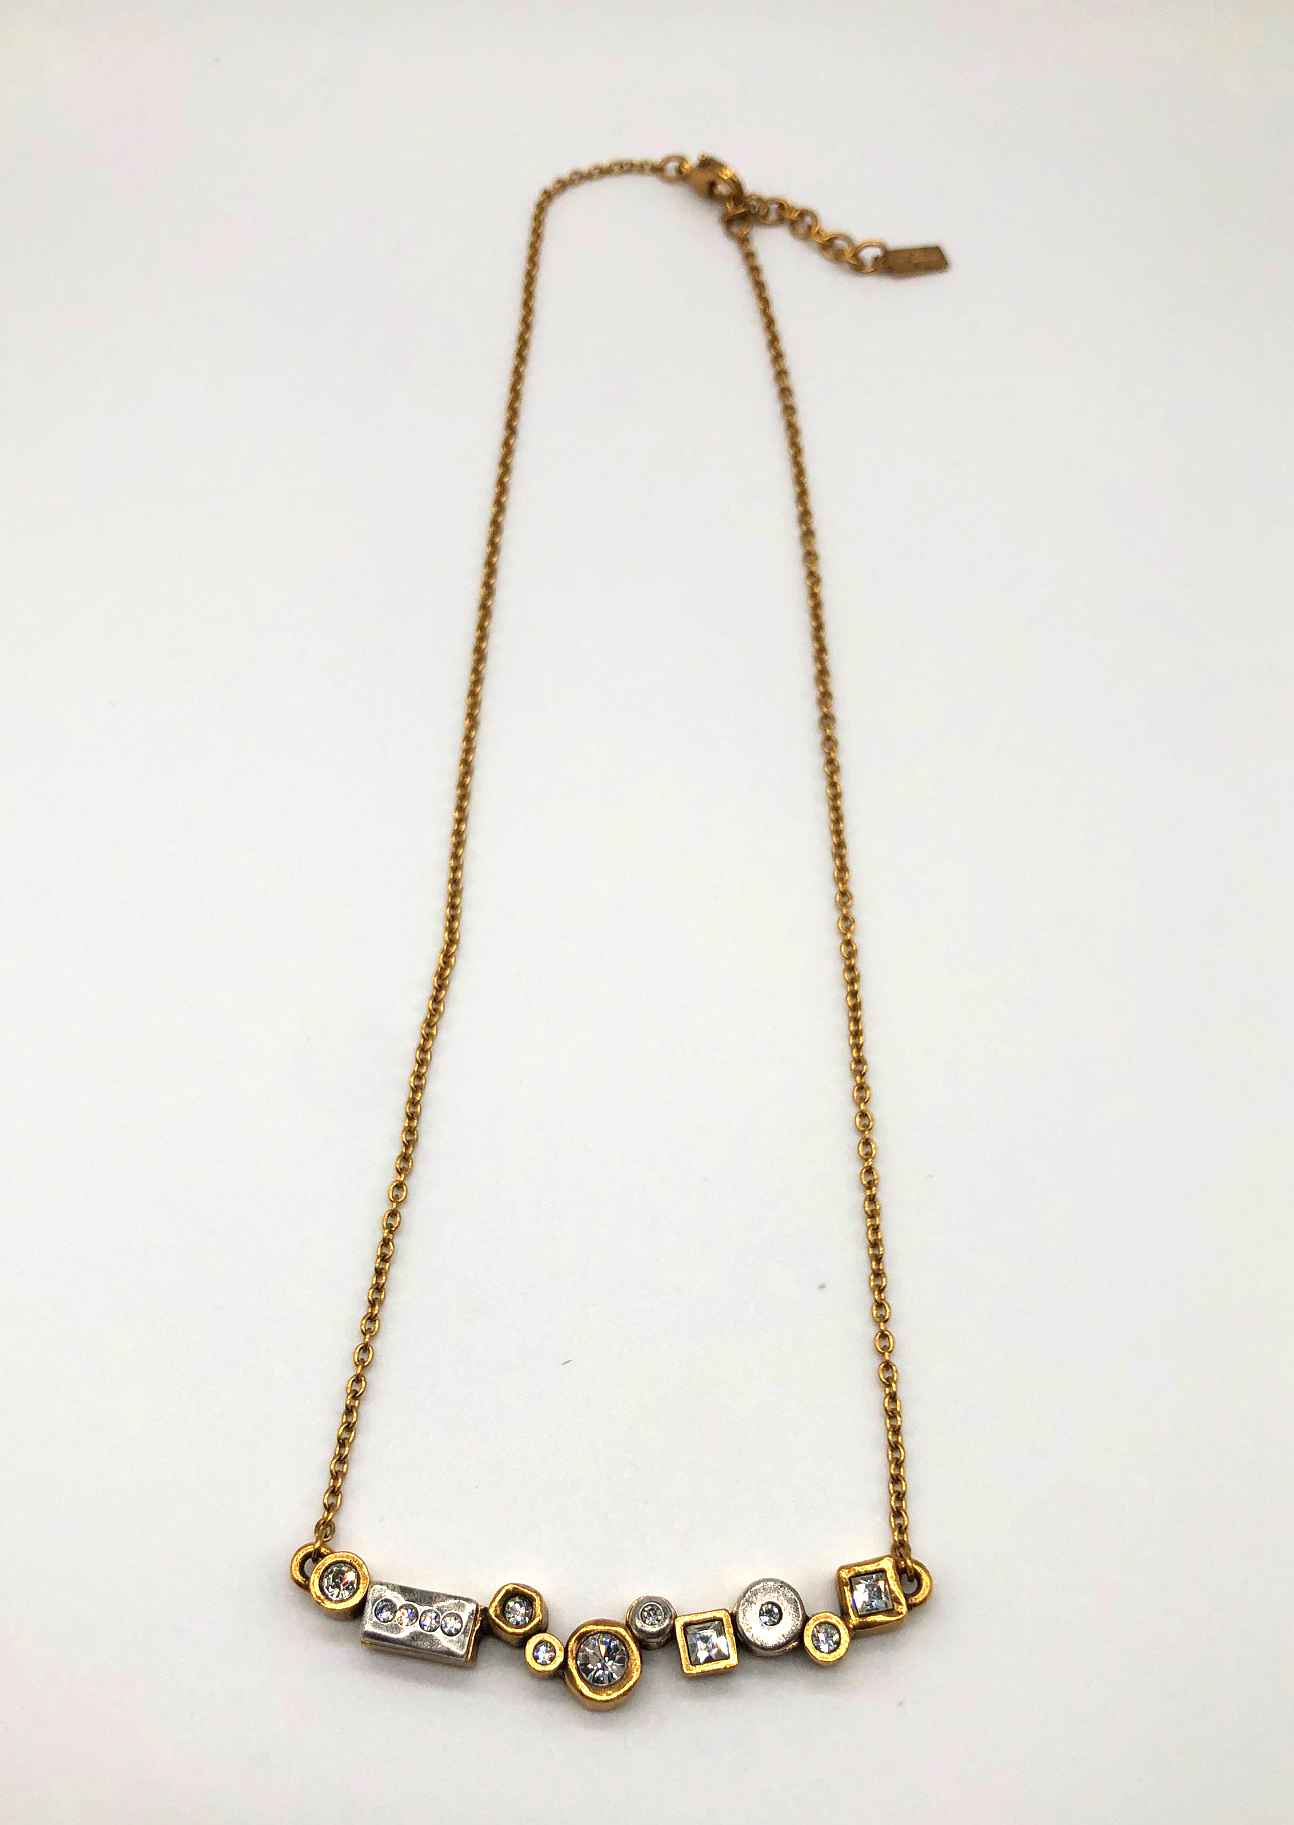 Danae Necklace in Gold, All Crystal